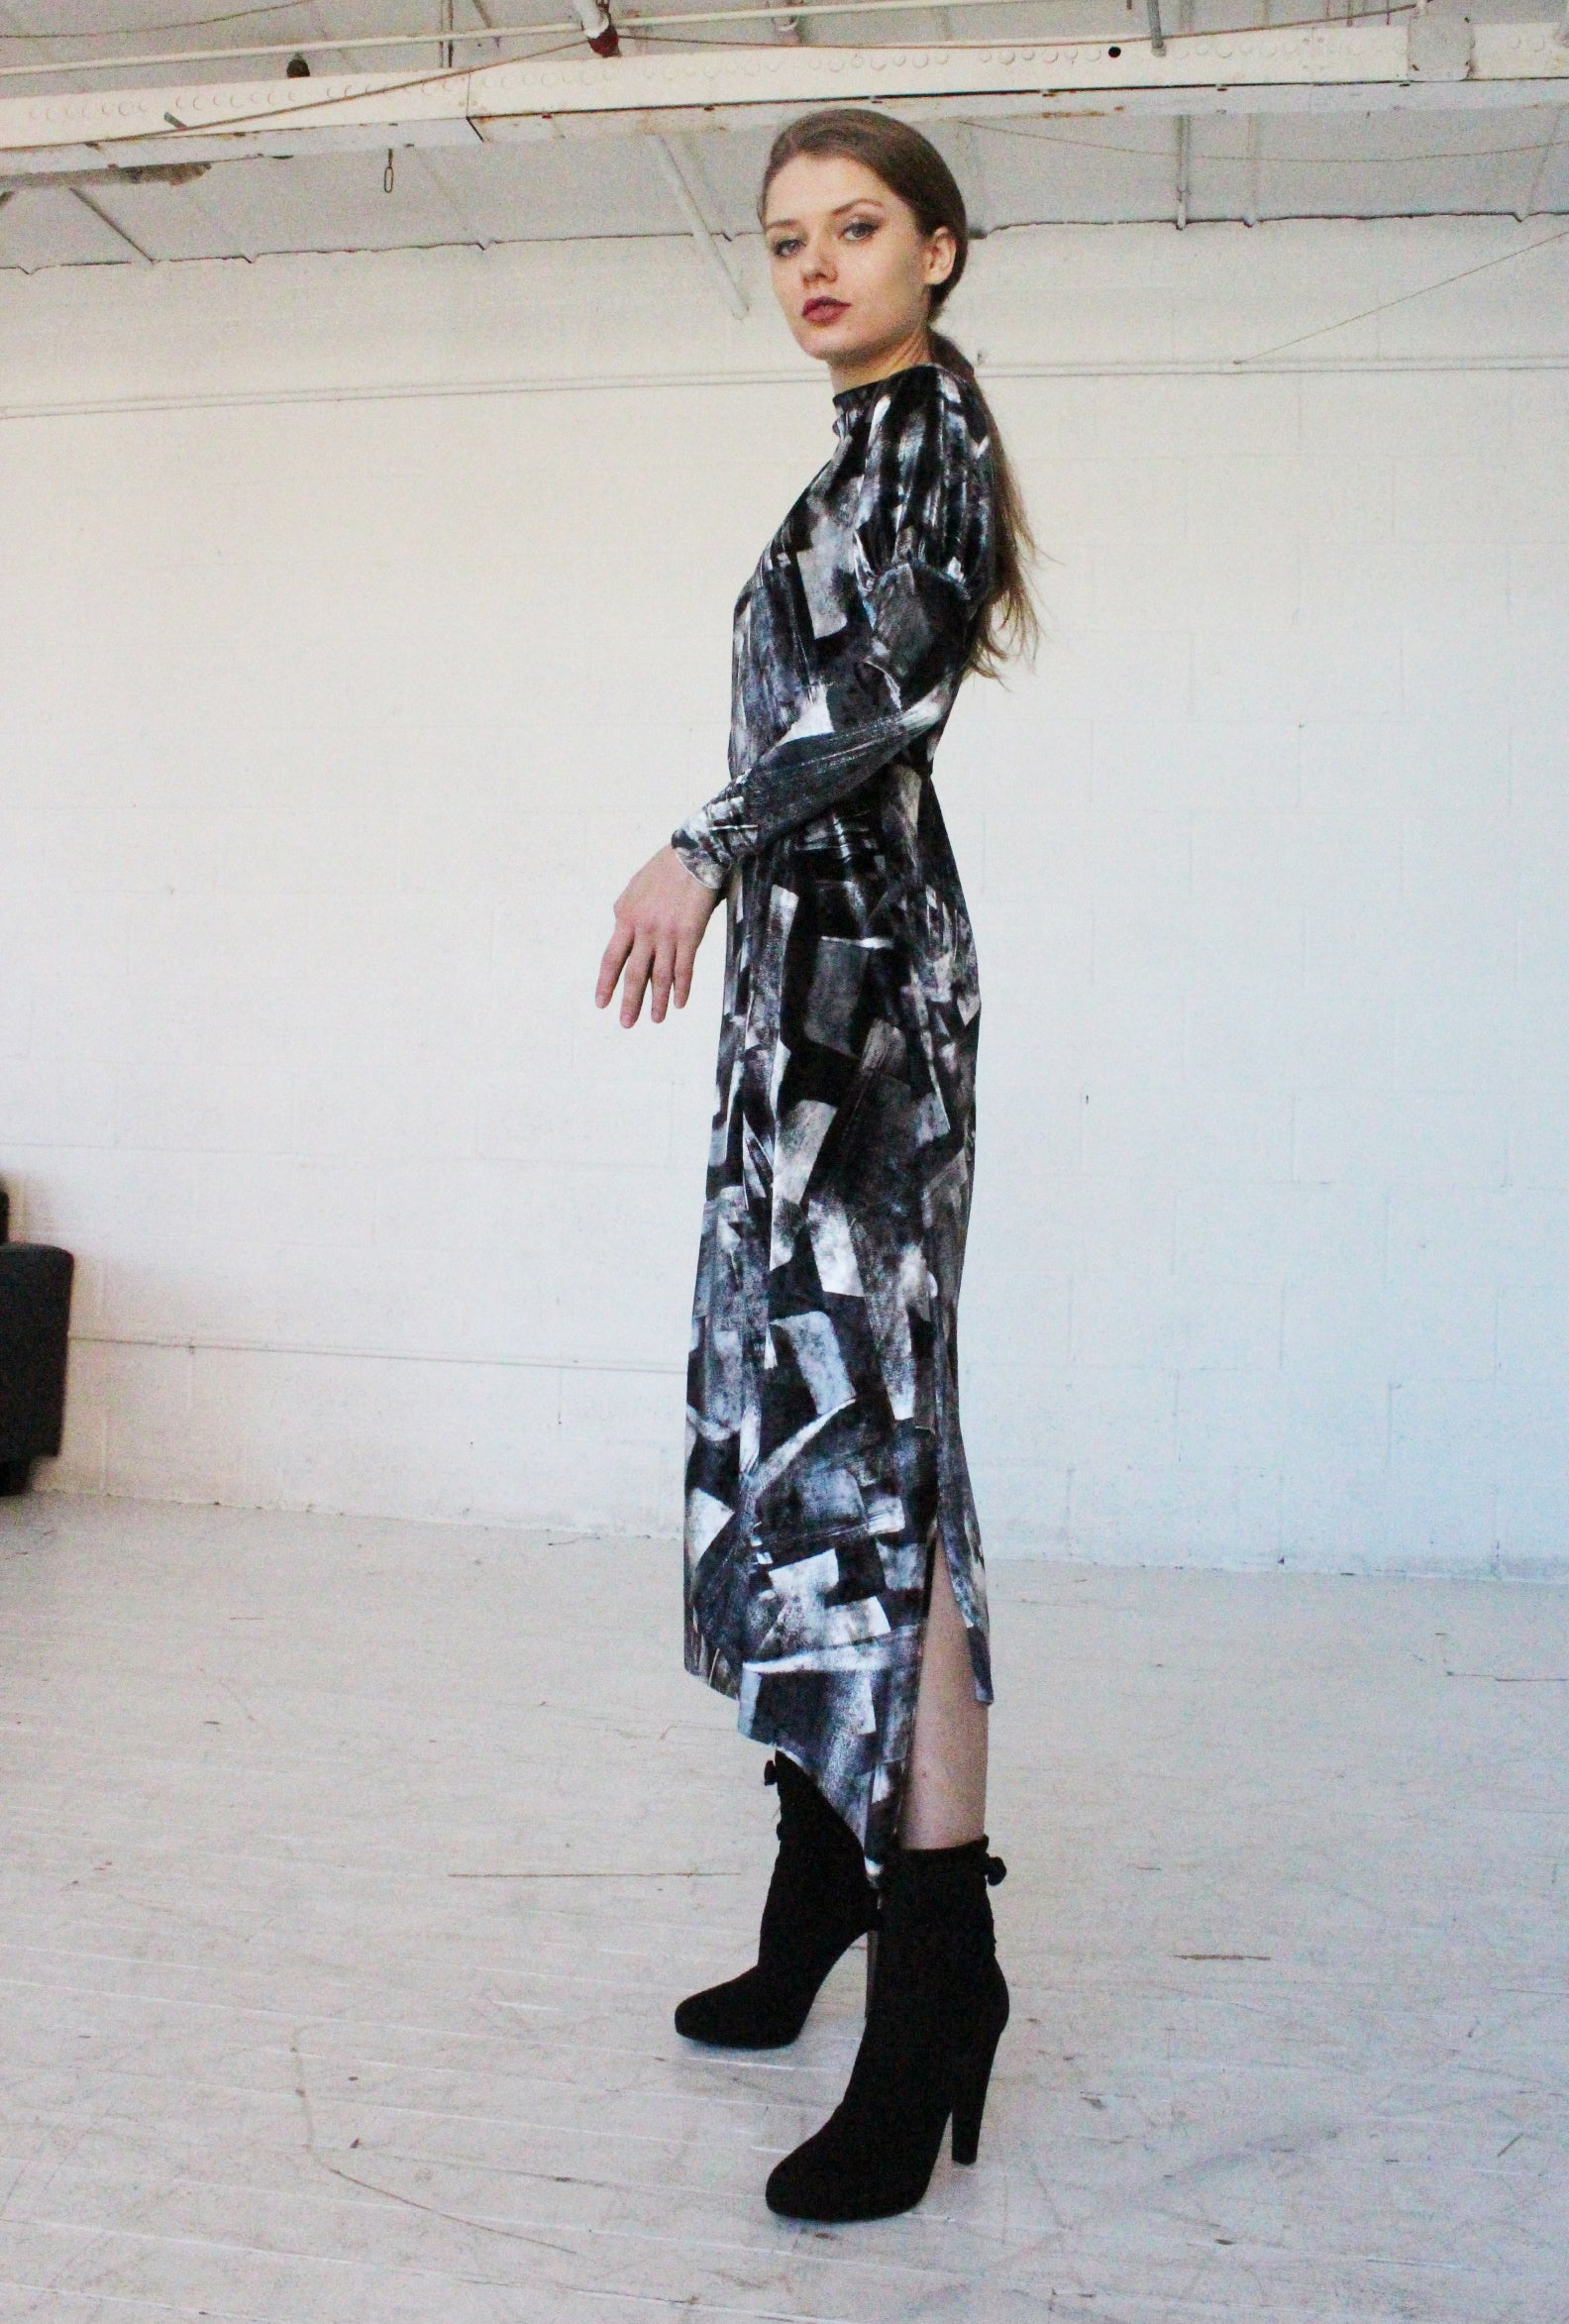 Ying Cai _ AW 21 Look 11 - 2